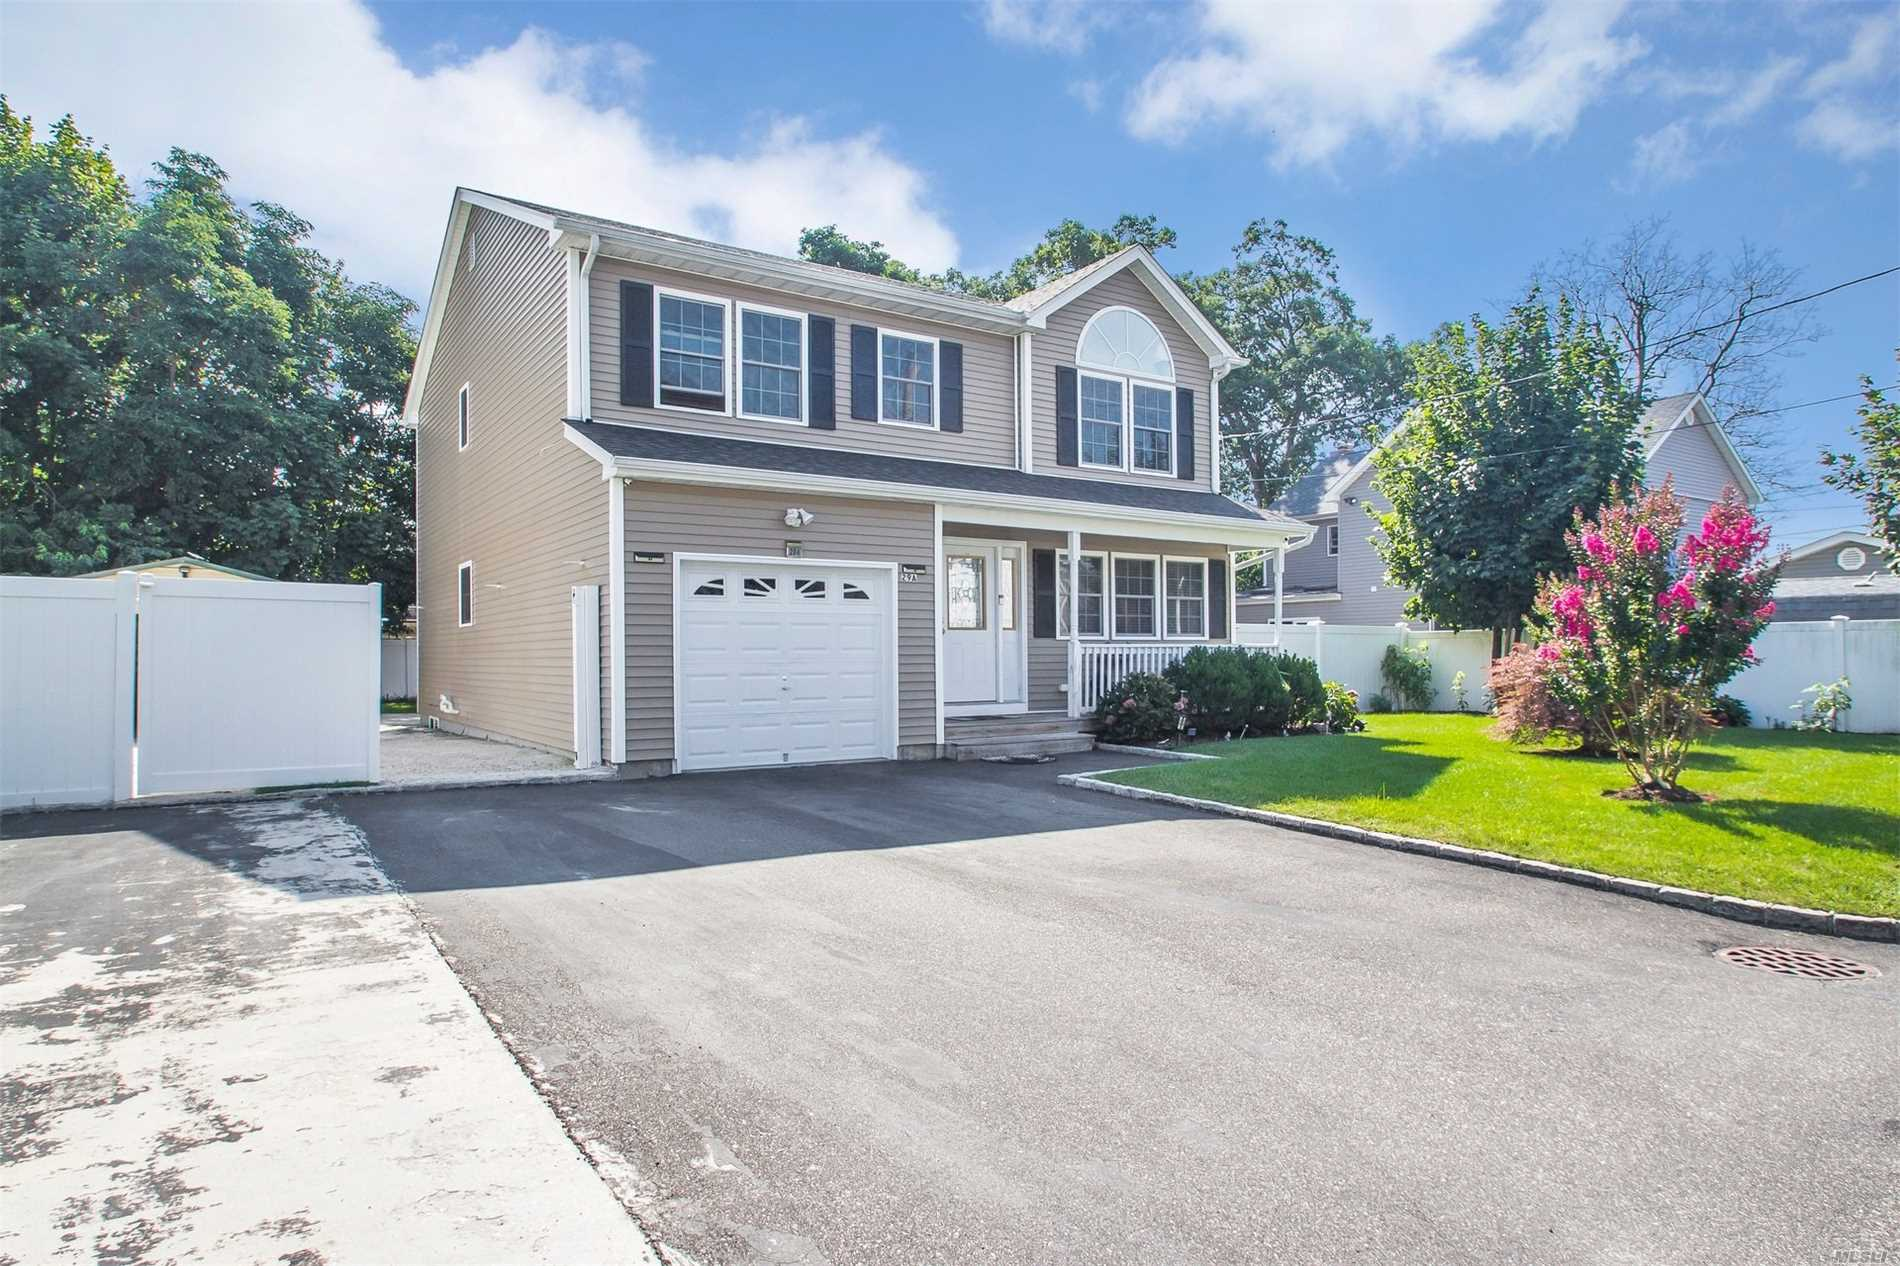 29A E Maple St - Massapequa, New York